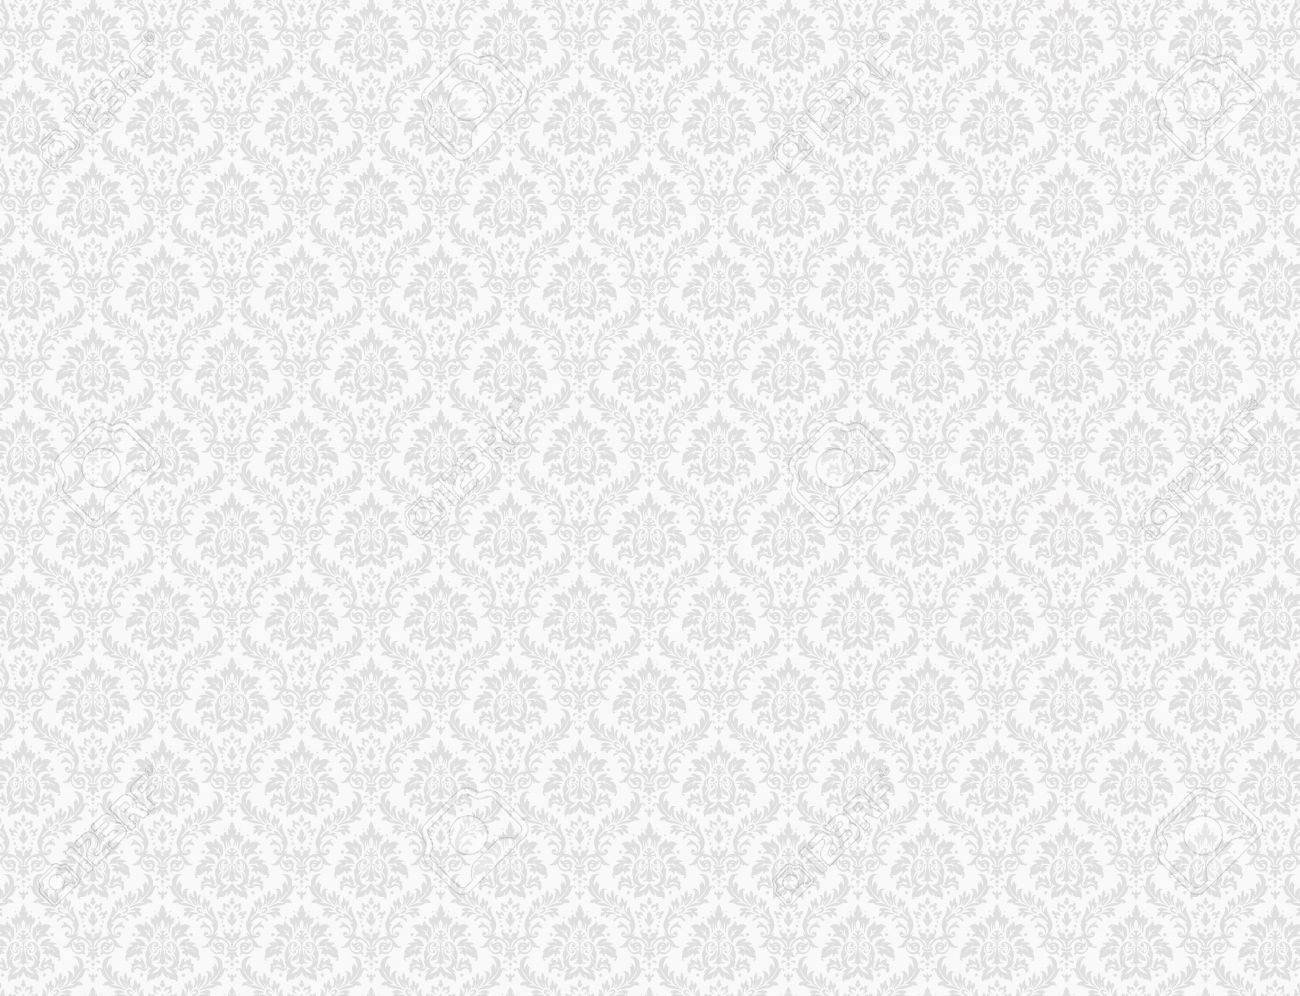 White Damask Wallpaper With Floral Patterns Stock Photo Picture